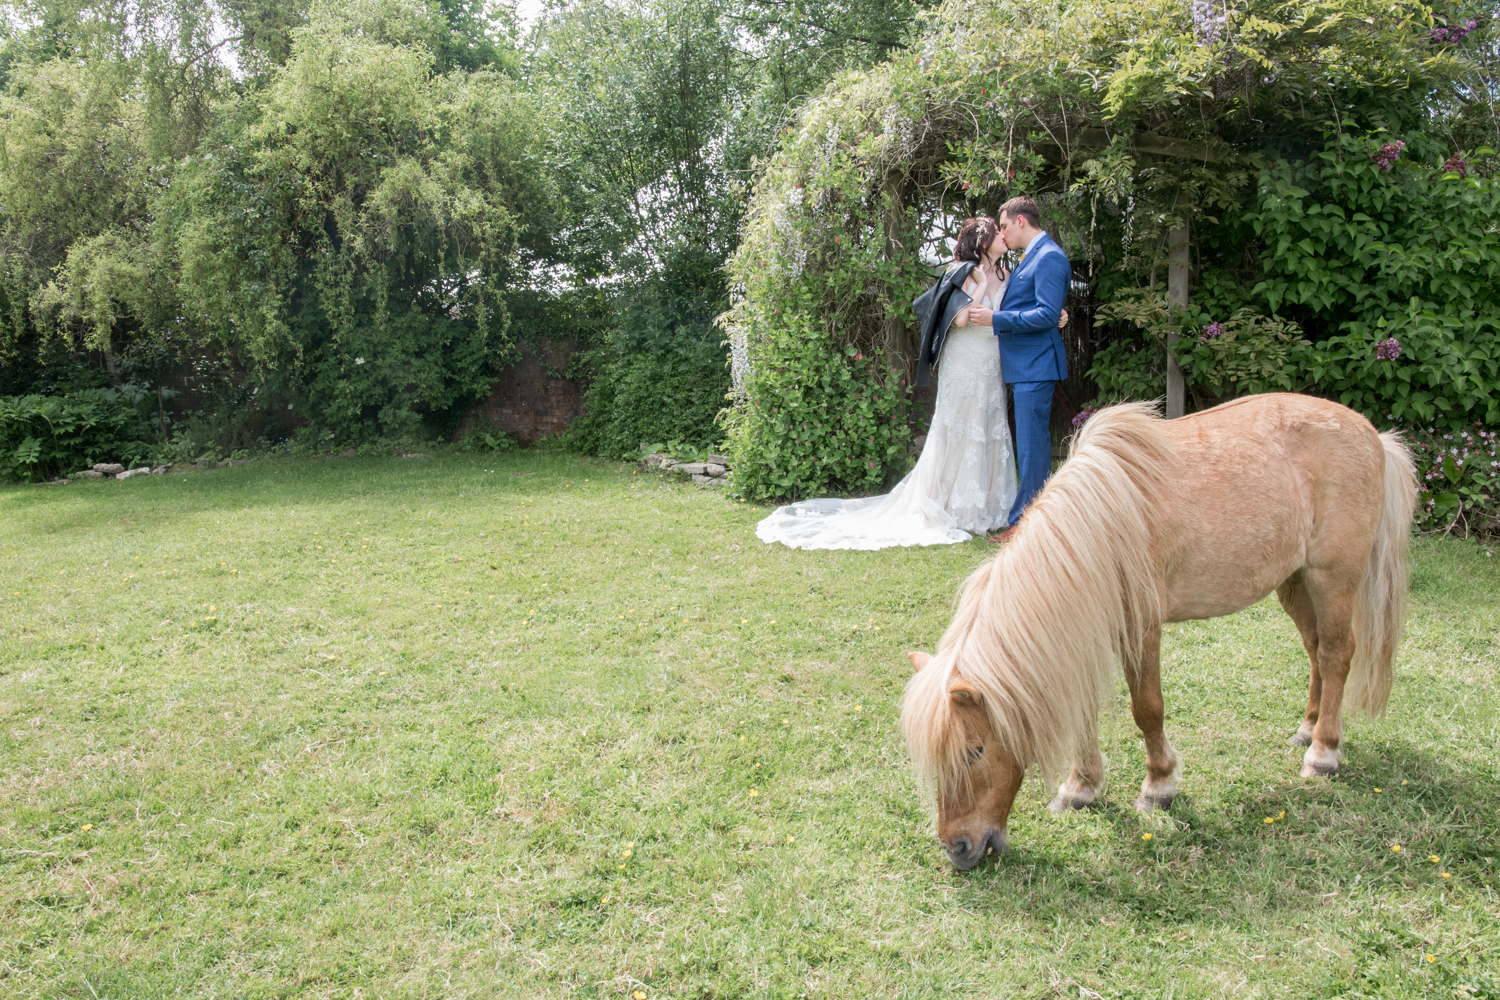 Gower Horses and Bride and Groom Wedding Photography in Swansea